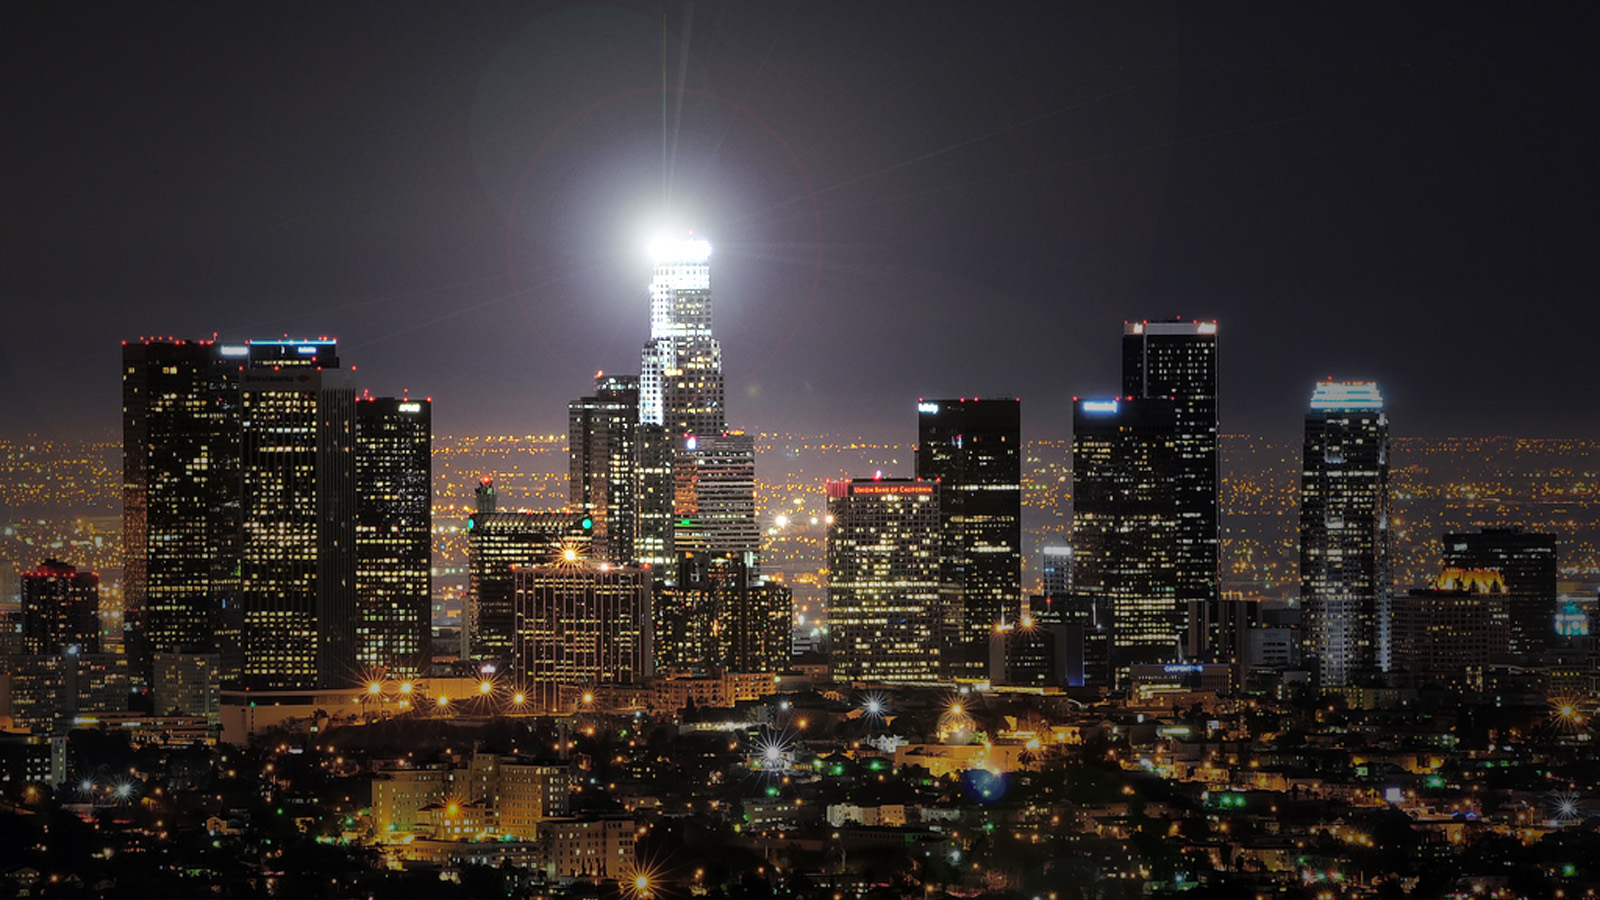 Download Los Angeles Skyline Wallpaper HD Gallery